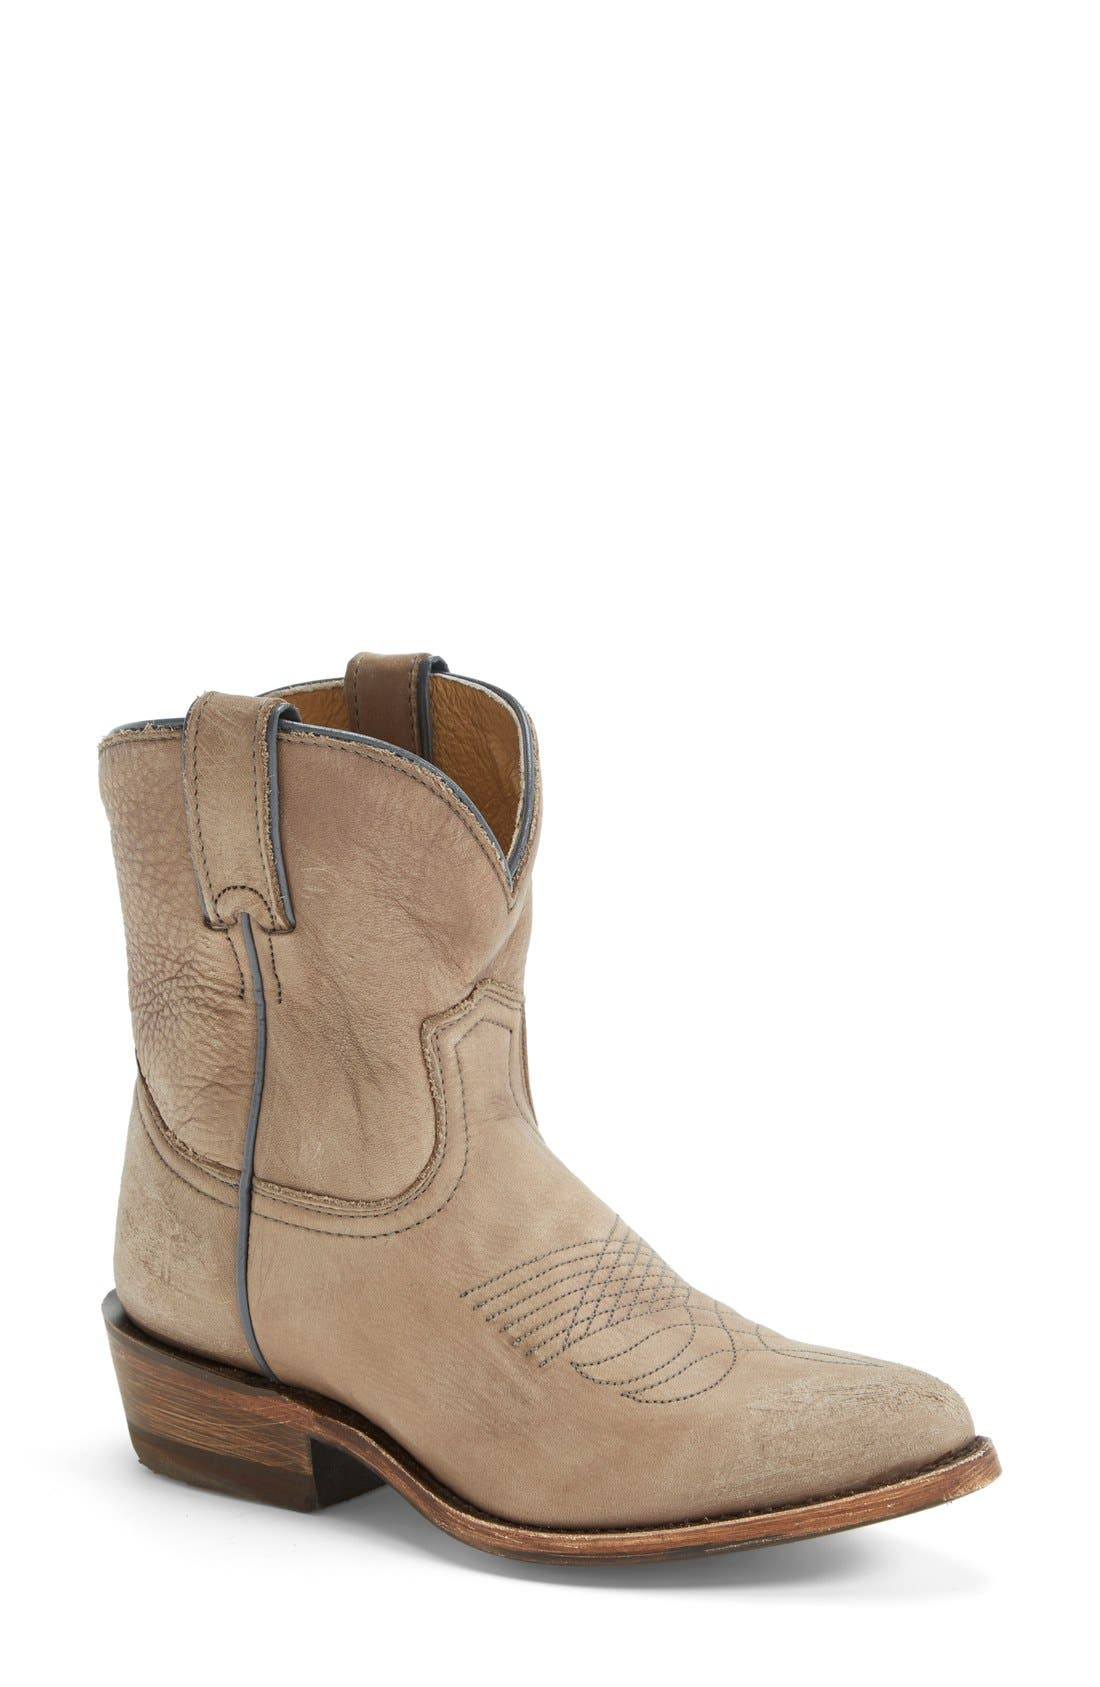 Alternate Image 1 Selected - Frye 'Billy' Short Boot (Women)